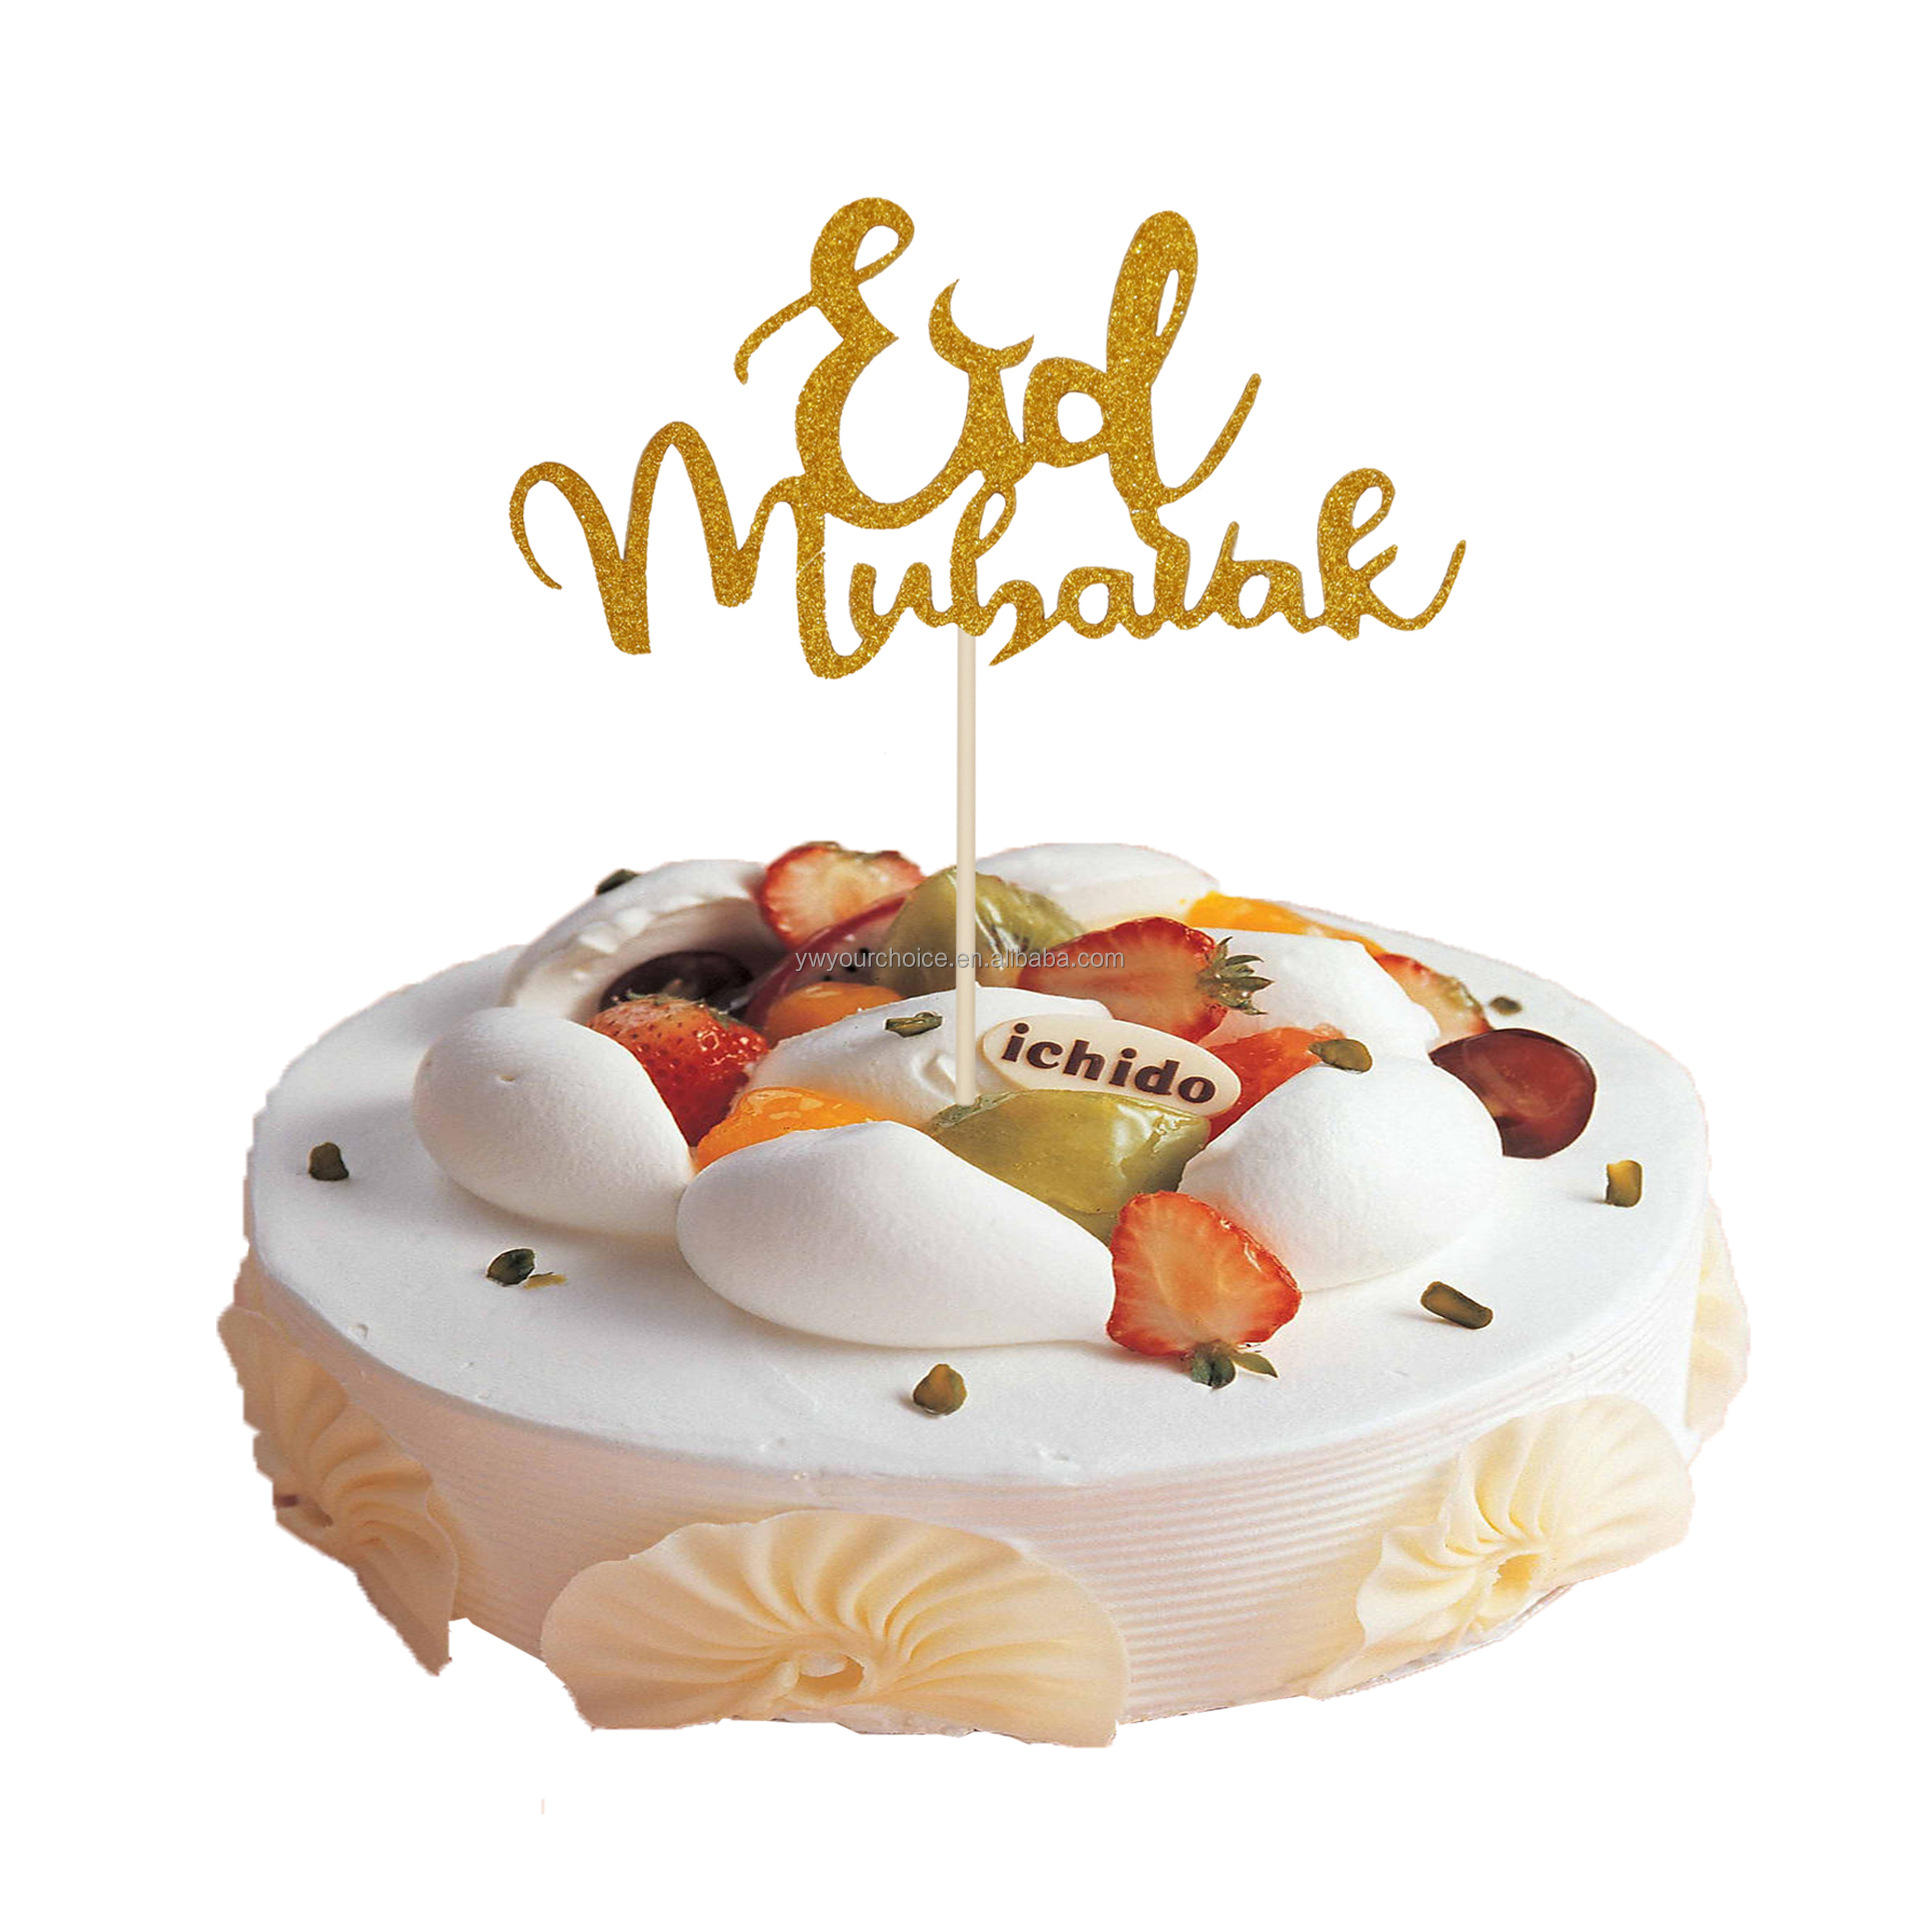 Carry Kaile Hot Selling Eid Mubarak <span class=keywords><strong>Cake</strong></span> Decoratie Ramadan Party Decoratie Islam Moslim Party Decoratie Items Shining